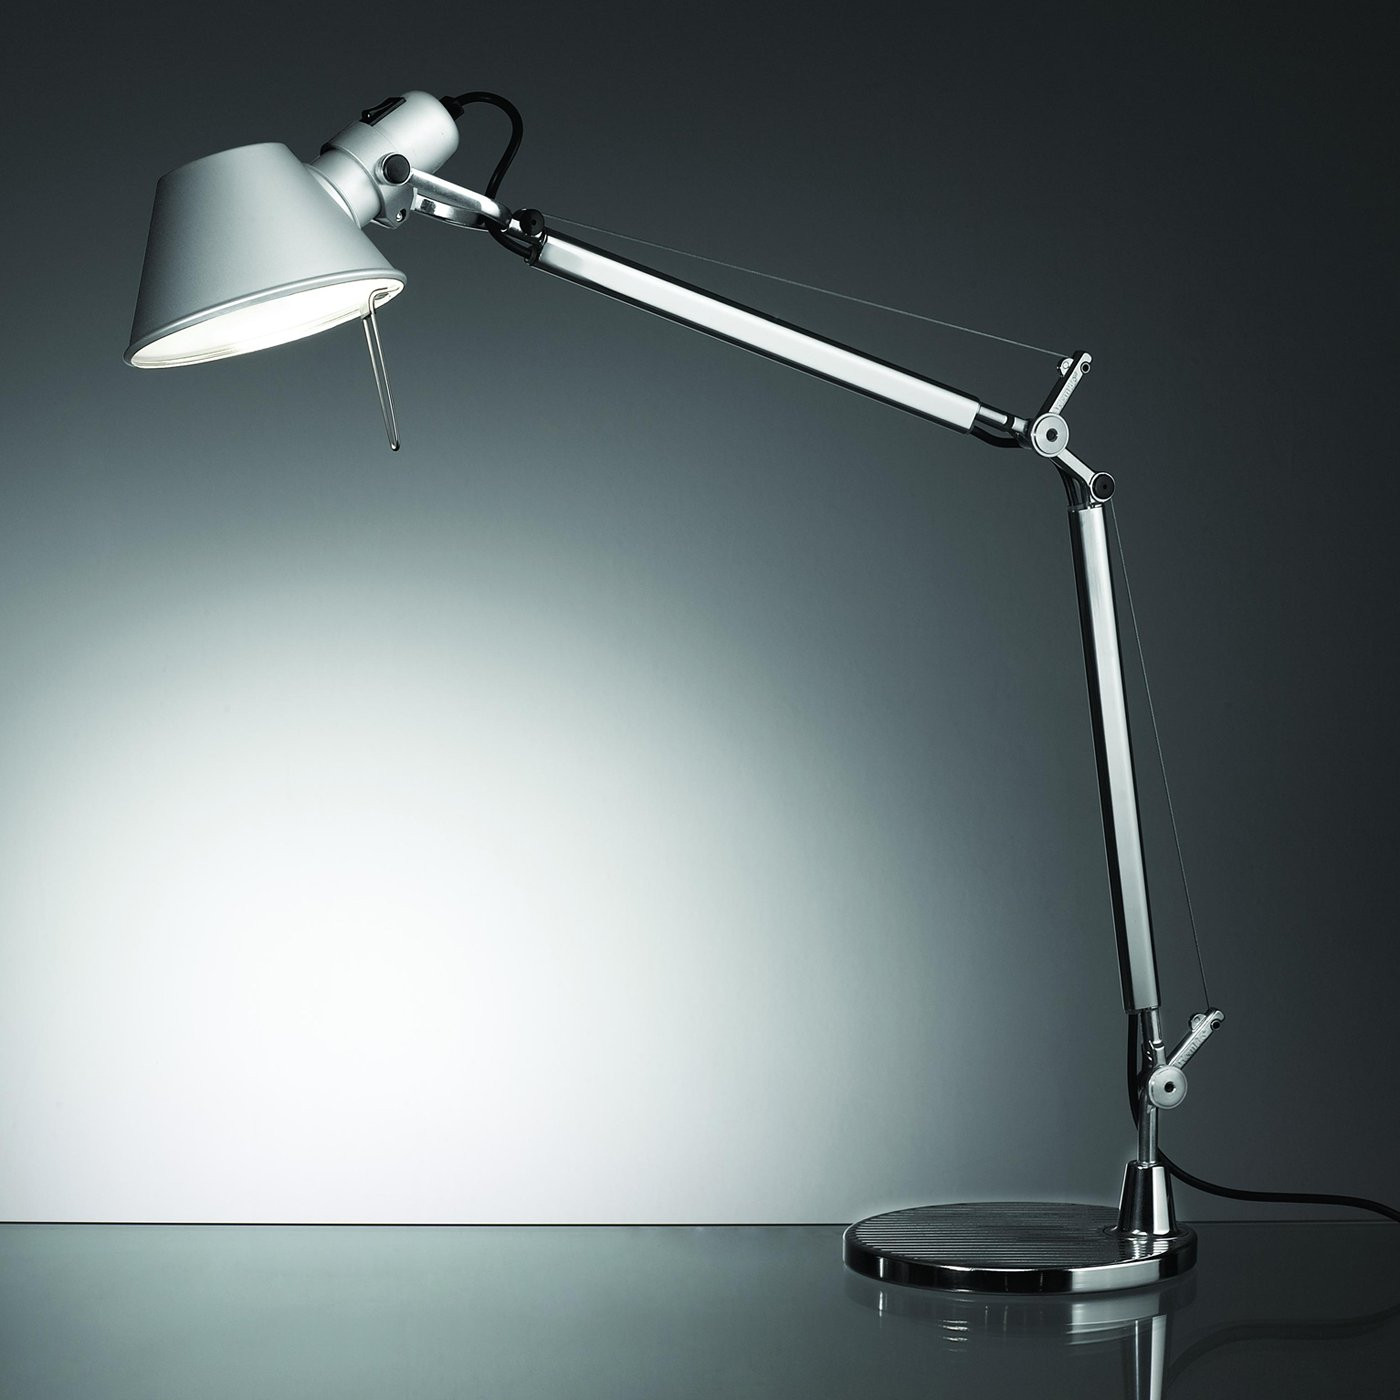 Best ideas about Best Desk Lamps . Save or Pin Our Top 5 Desk Lamps for Your fice Now.